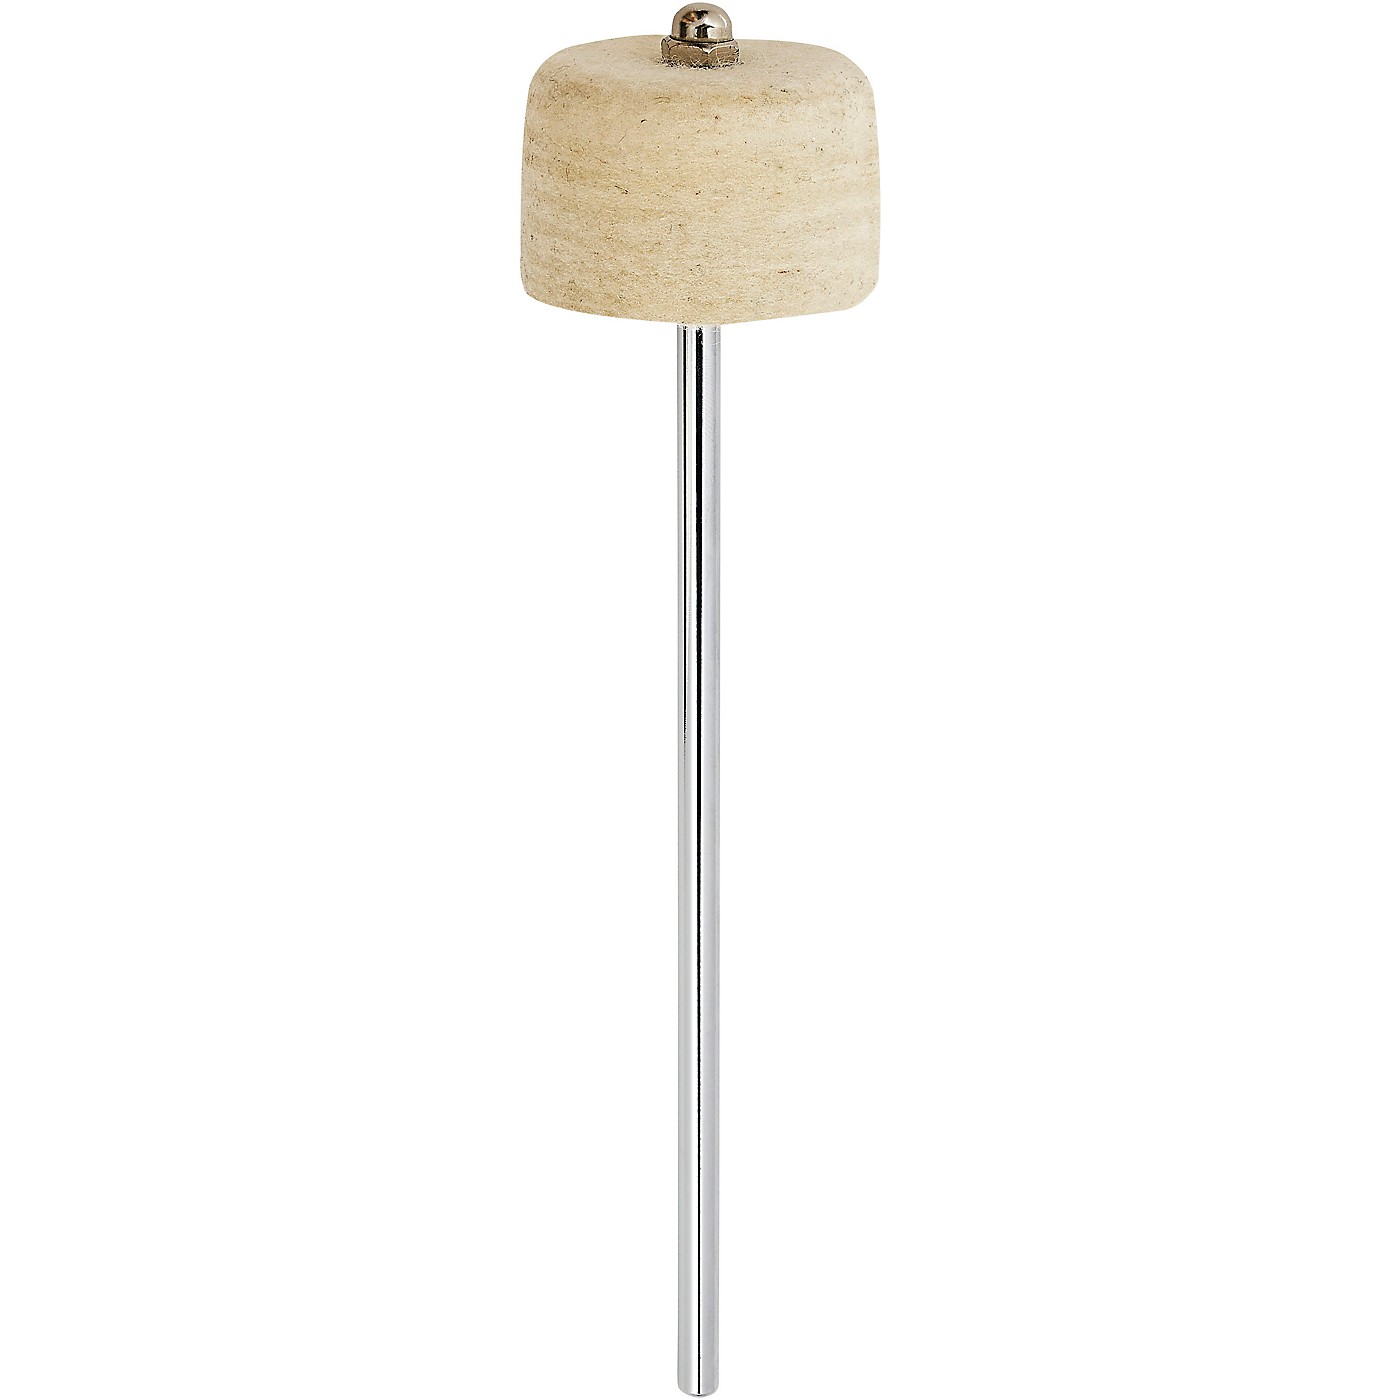 PDP by DW Conical Felt Bass Drum Beater thumbnail